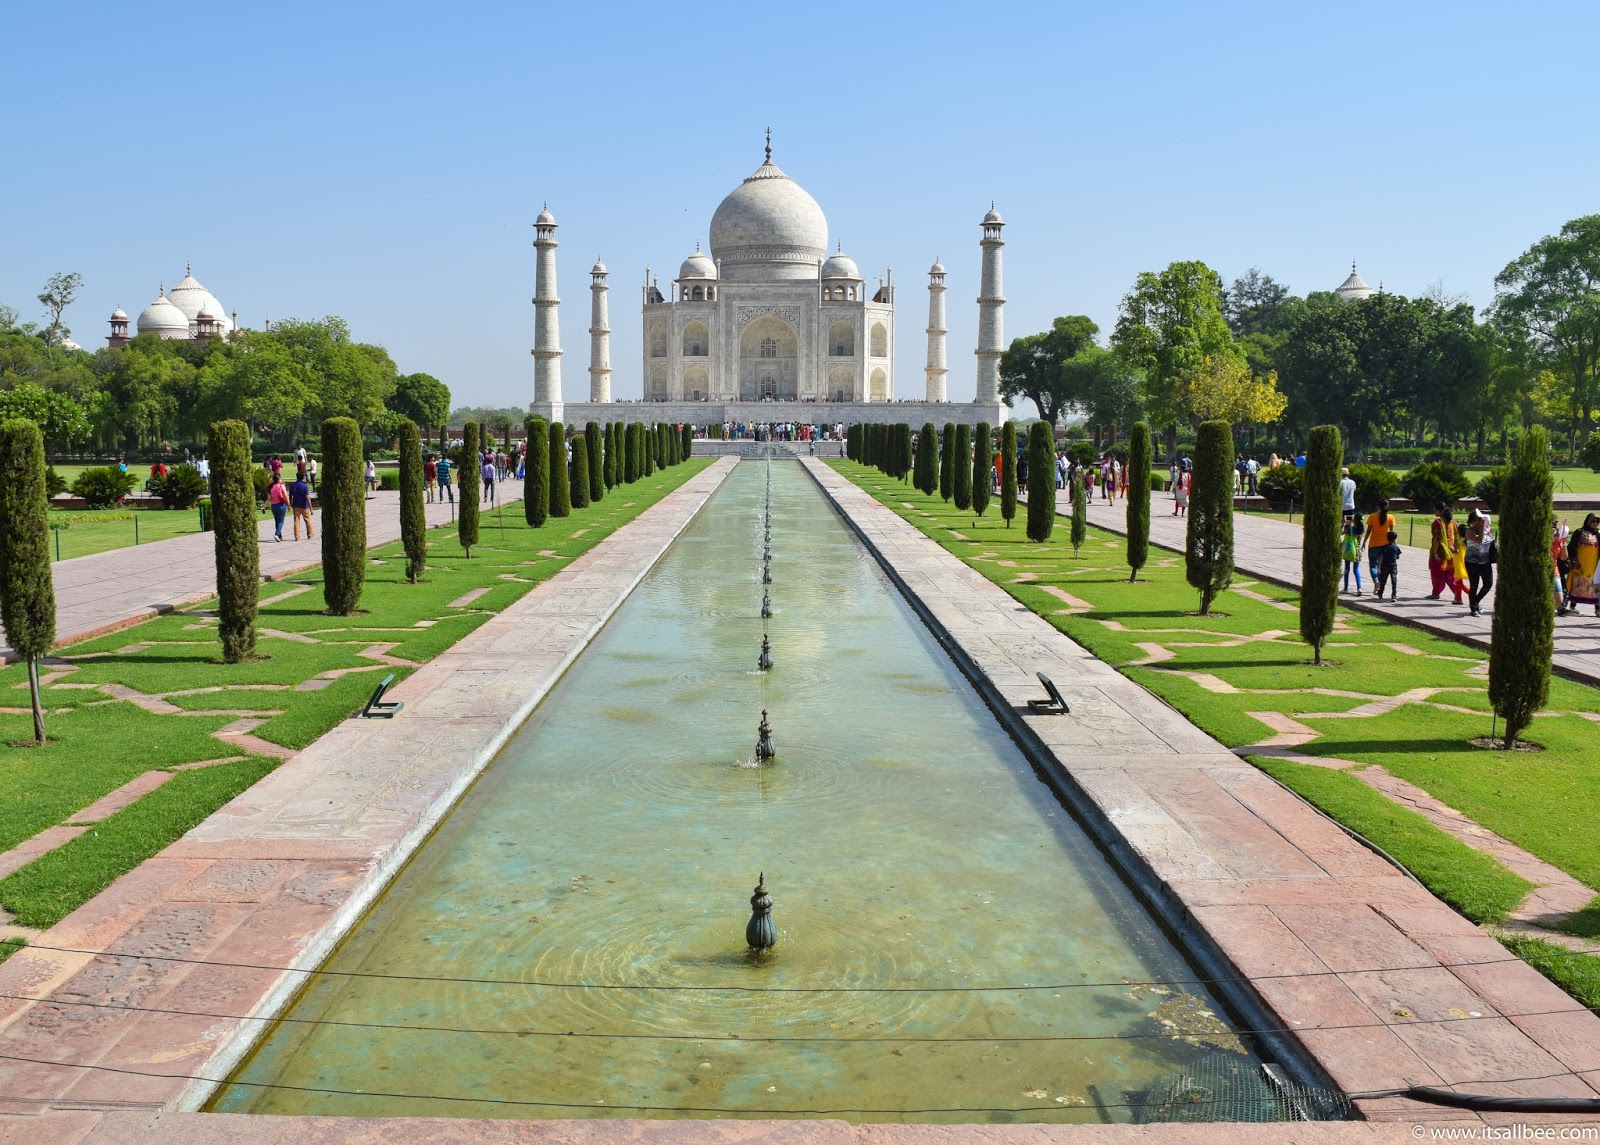 visit taj mahal essay Taj mahal essay taj mahal some of those who had a chance to visit taj mahal say that it is an elegy in marble, others keep telling that it is a genuine symbol of everlasting love buy custom taj mahal essay related essays.